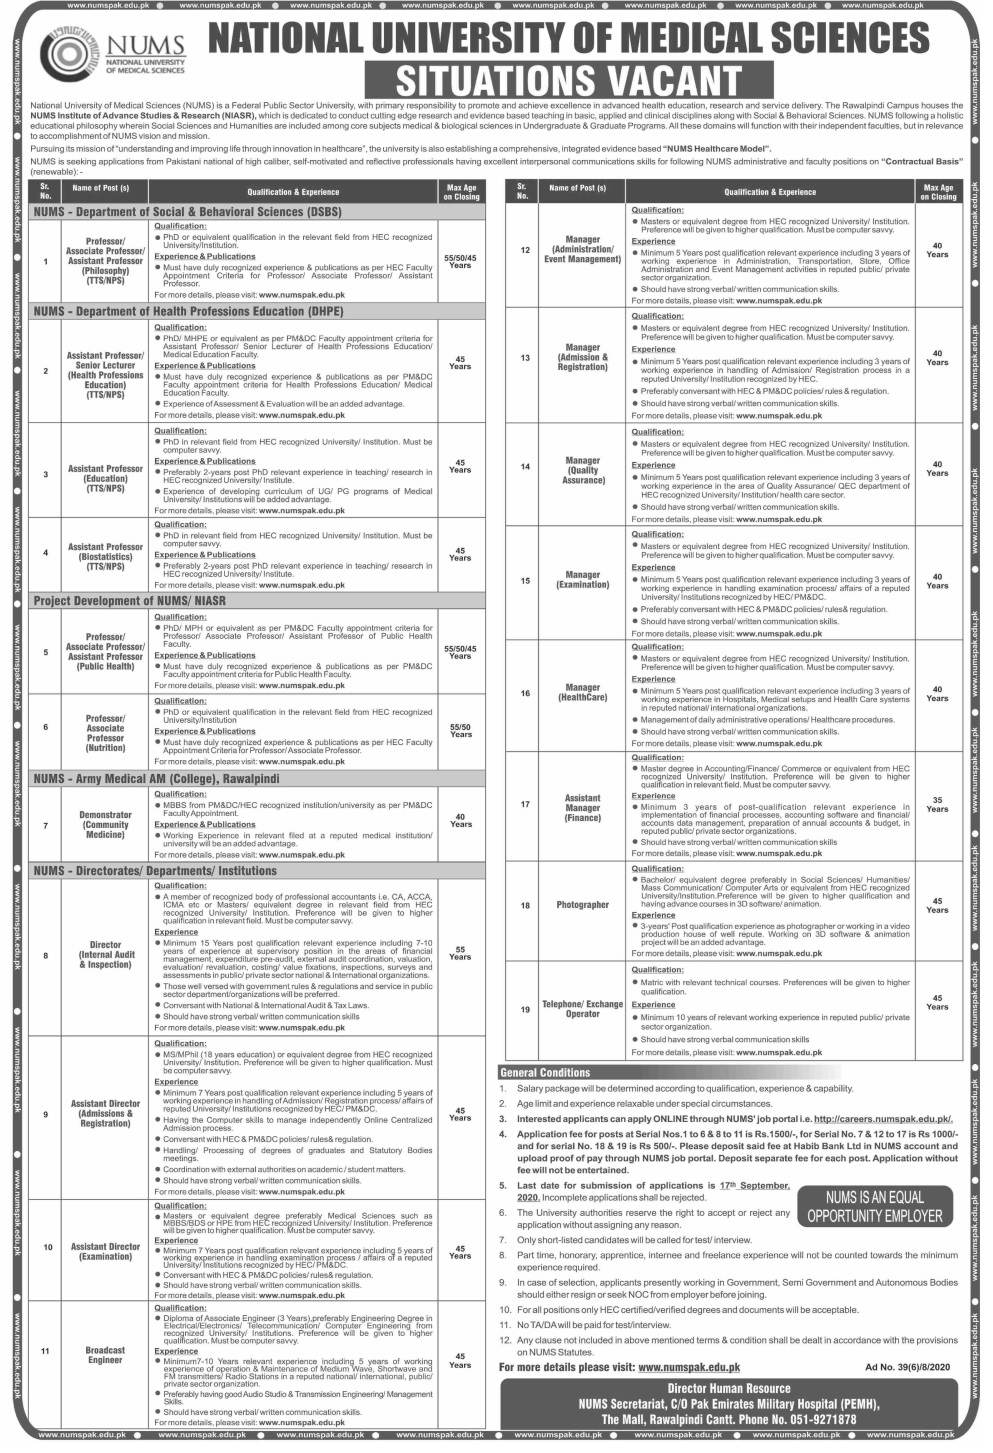 Latest National University of Medical Sciences NUMS Jobs 2020